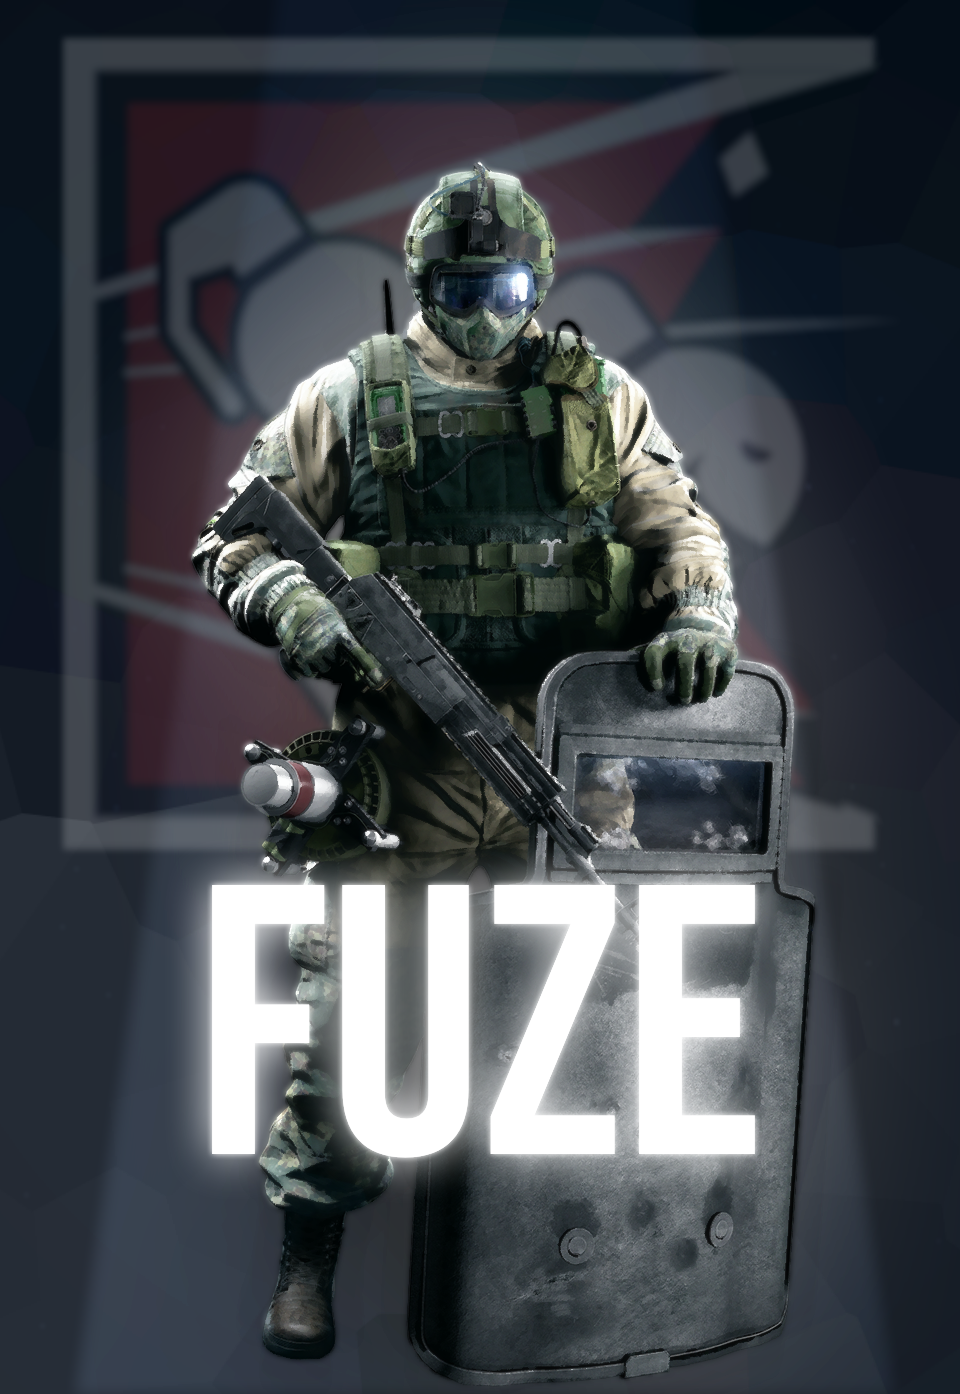 Fuze Wallpaper Posted By Michelle Tremblay